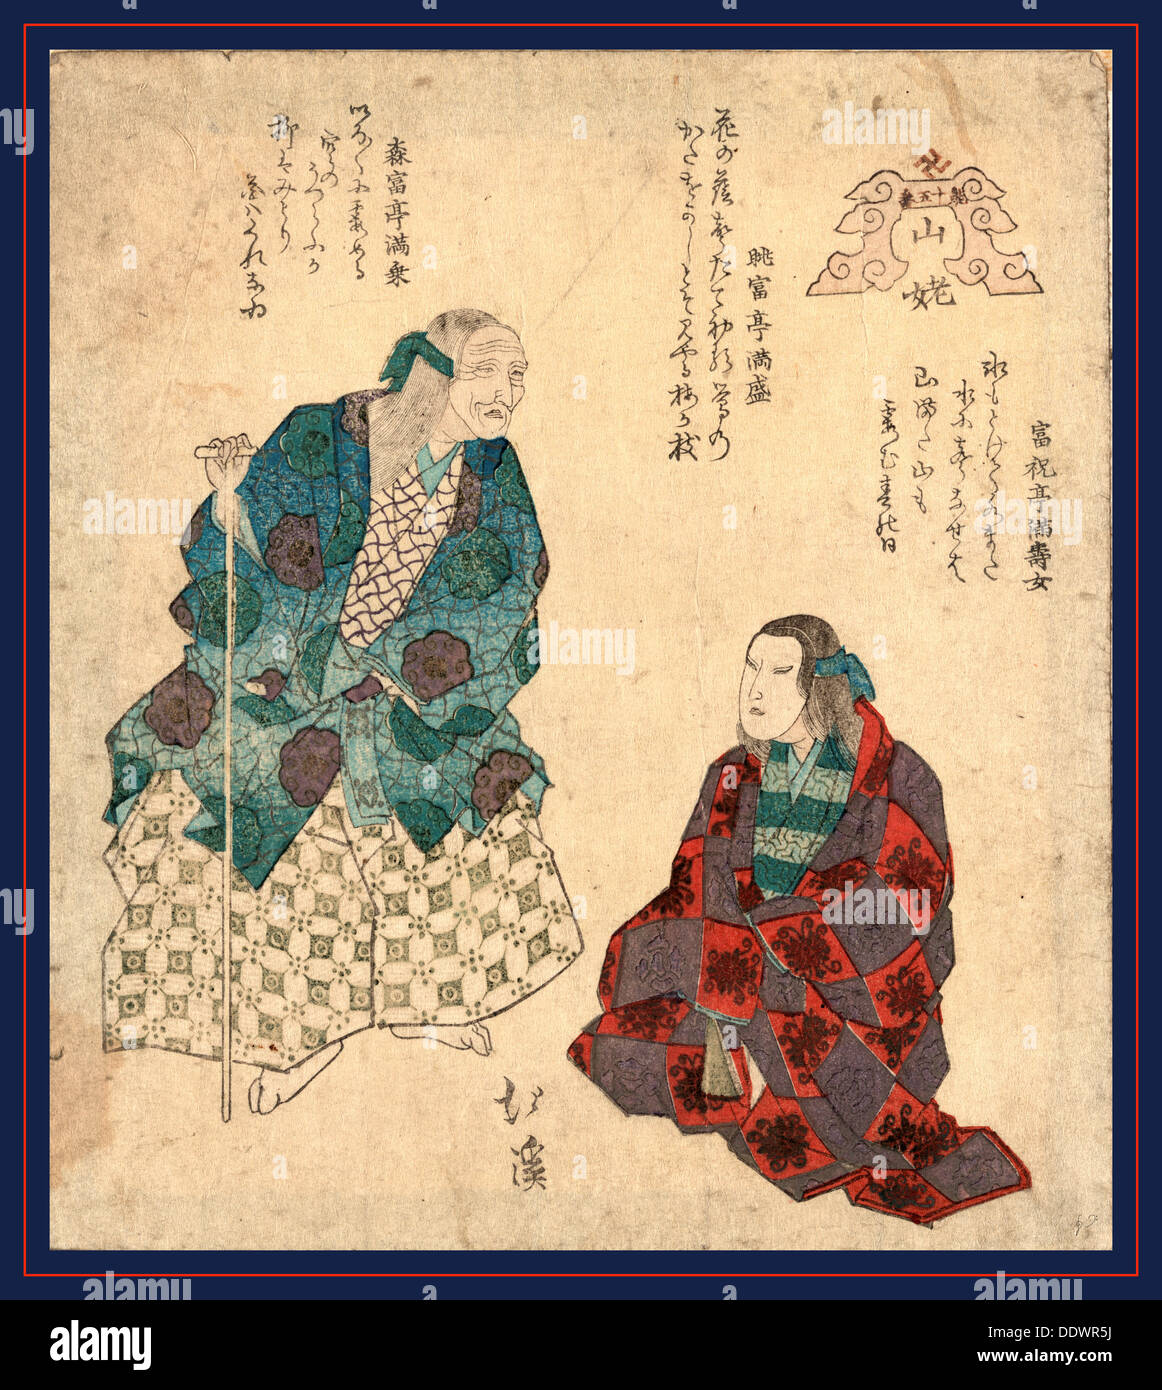 Yamauba, Mountain woman. [between 1830 and 1835], 1 print : woodcut, color ; 20.9 x 18.7 cm., Print shows two actors wearing - Stock Image